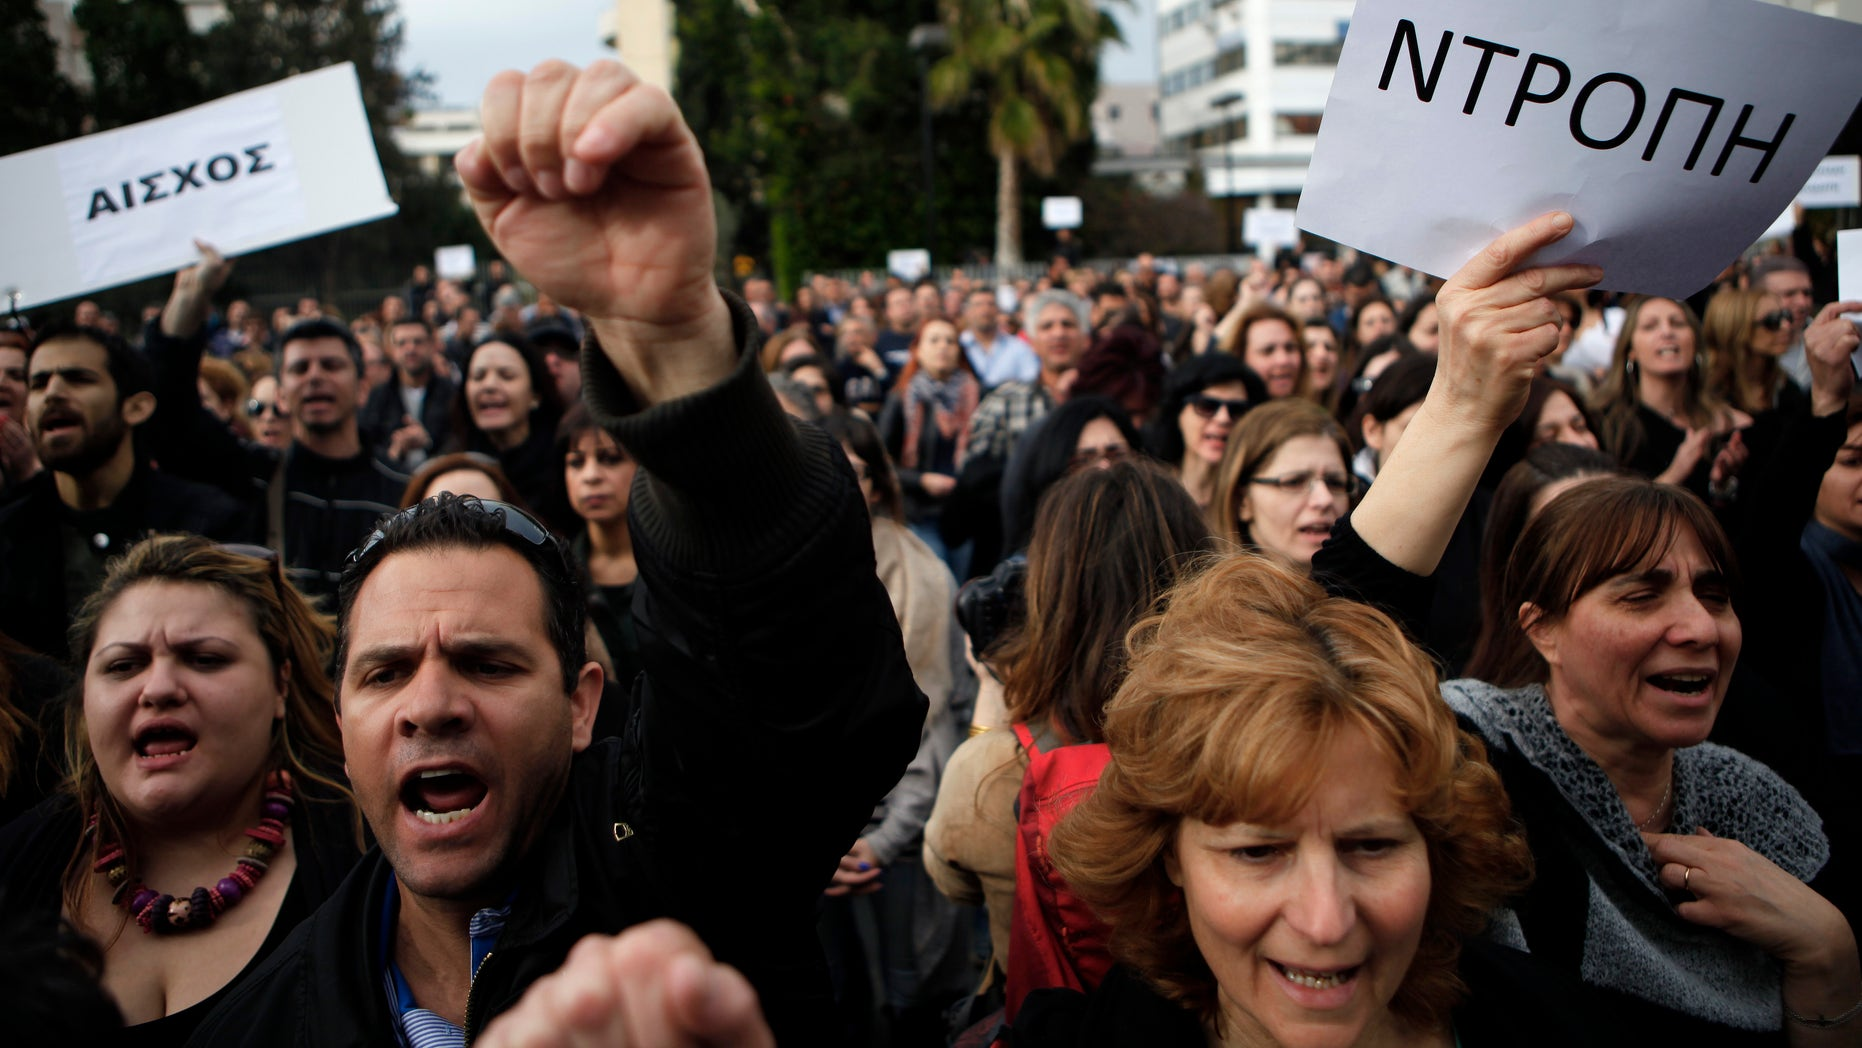 """FILE- In this Tuesday, March 26, 2013 file photo, employees of the Bank of Cyprus shout slogans as they holds banners reading in Greek """"shame"""" during a protest at Cyprus central bank in Nicosia, Cyprus. The moment word broke that Cypriot lawmakers in Parliament had voted down a bailout deal that would have raided everyone's savings to prop up a collapsing banking sector, a huge cheer rose up from hundreds of demonstrators gathered outside that echoed through the building's corridors. Many relished it as a kind of David-against-Goliath moment  a country of barely a million people standing up to the will of Europe's behemoths who wanted it to swallow a very bitter pill to fix its broken-down economy. (AP Photo/Petros Karadjias, File)"""